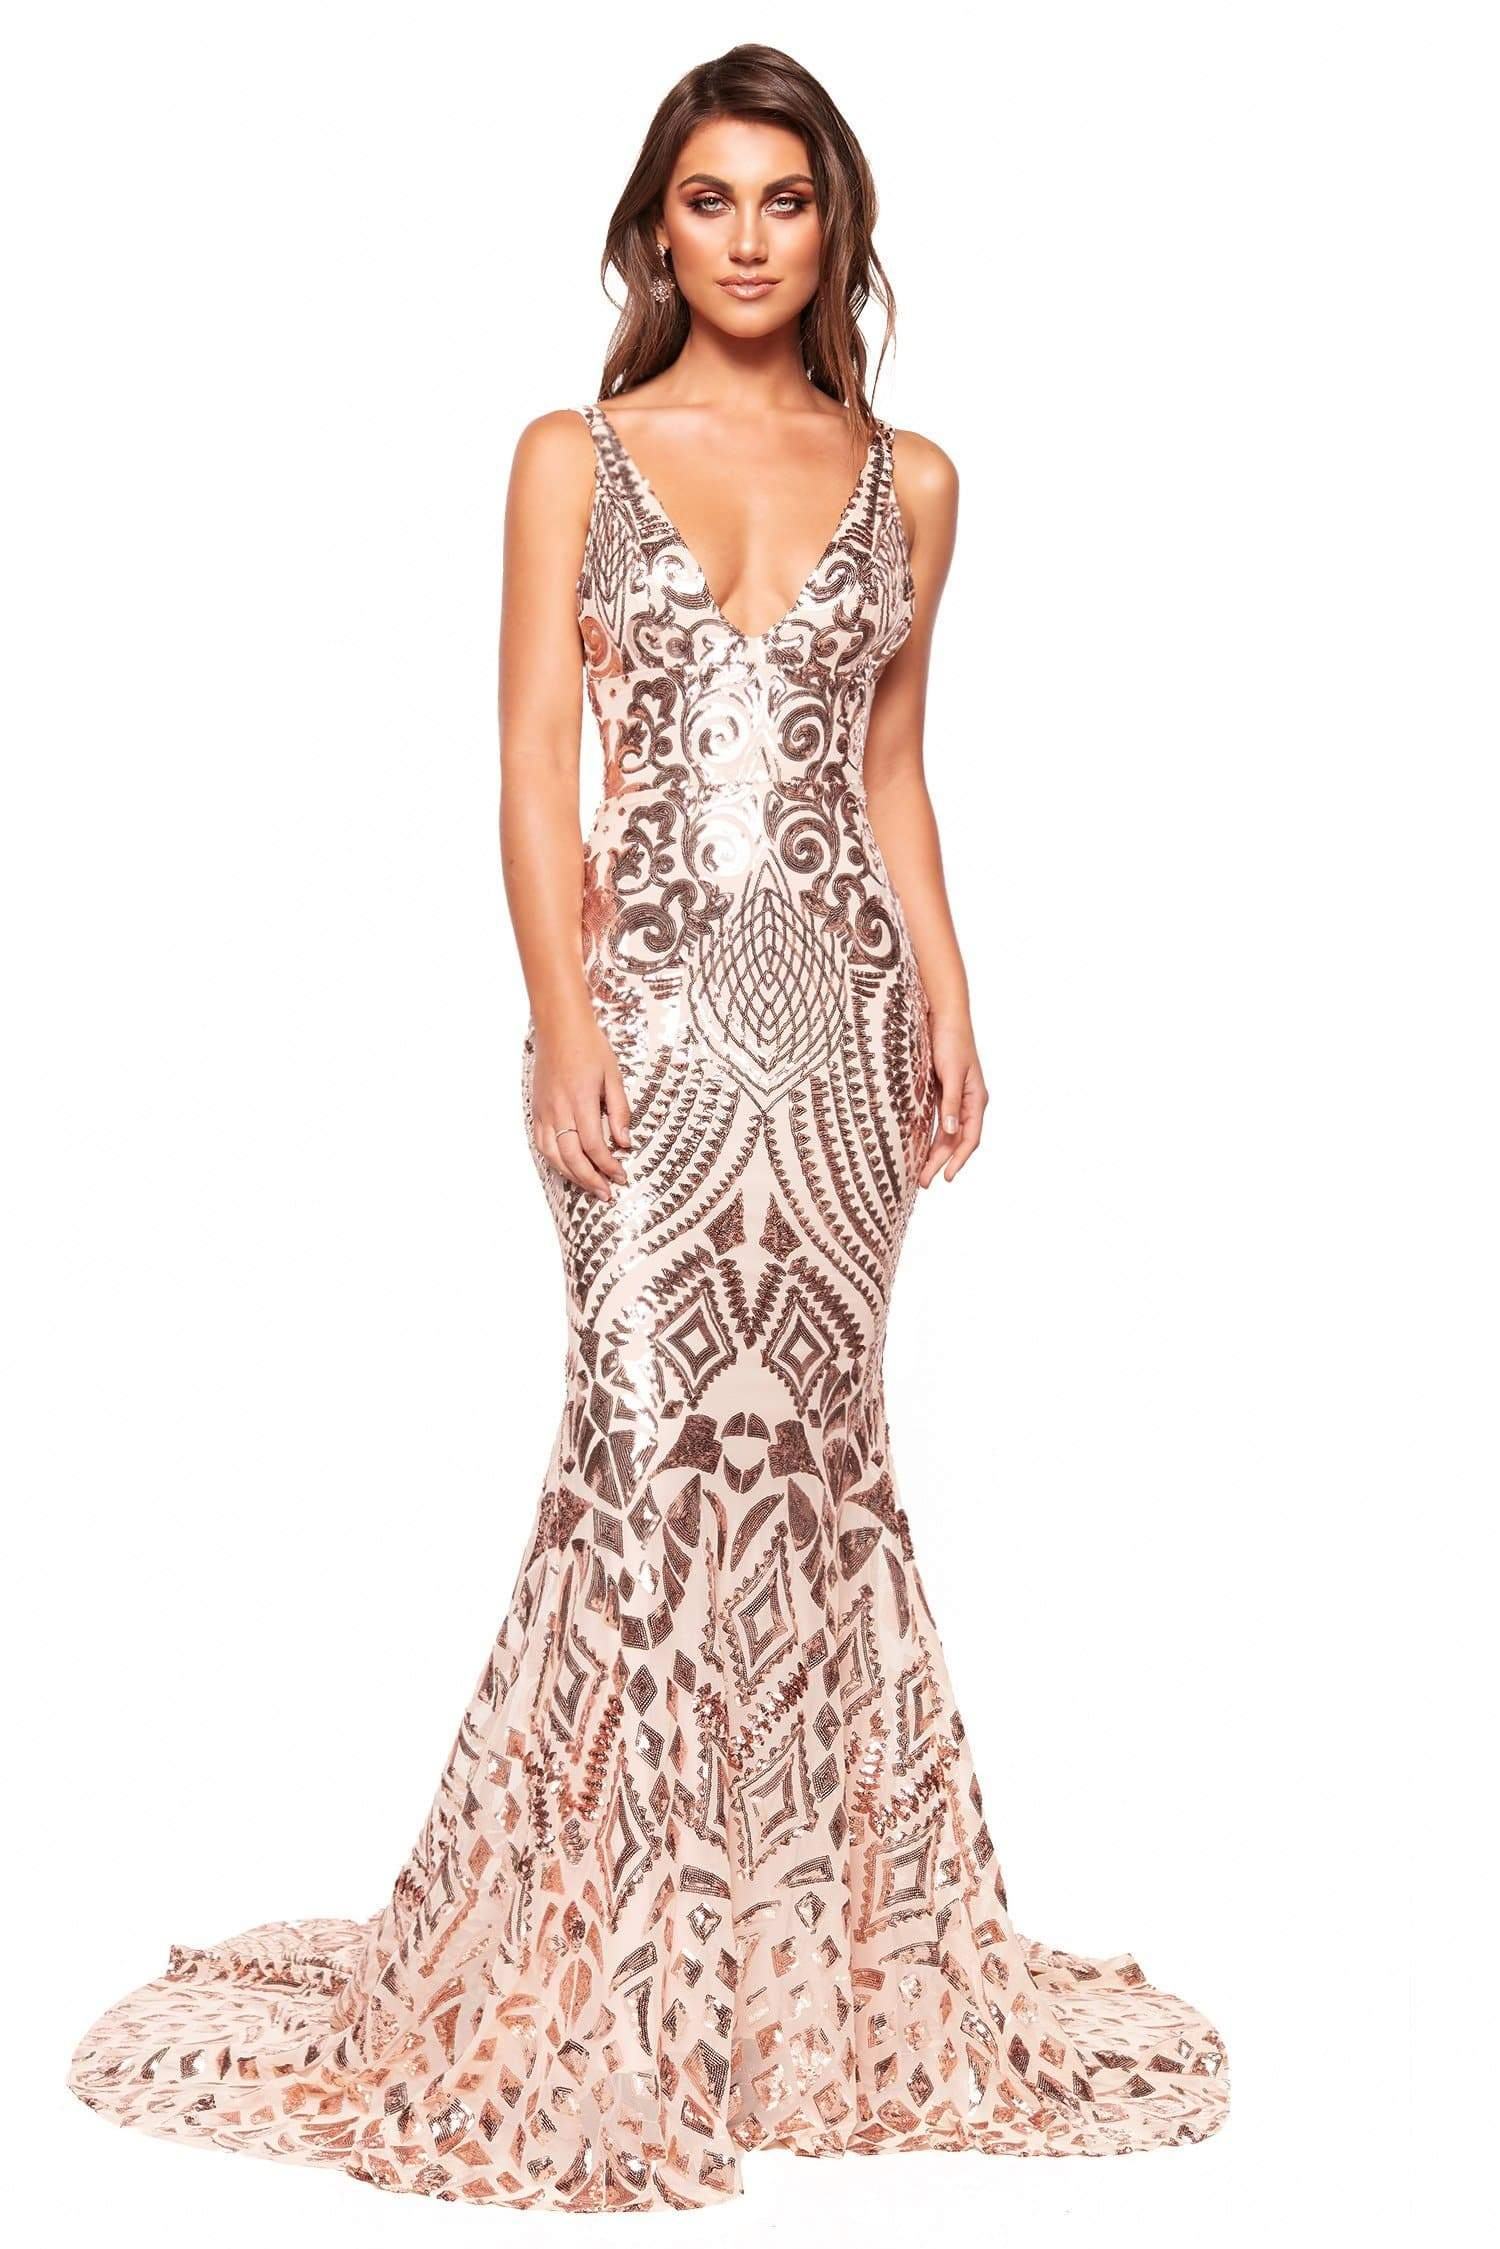 Rose Gold Dresses Gowns Afterpay Sezzle We Ship Worldwide A N Luxe Label